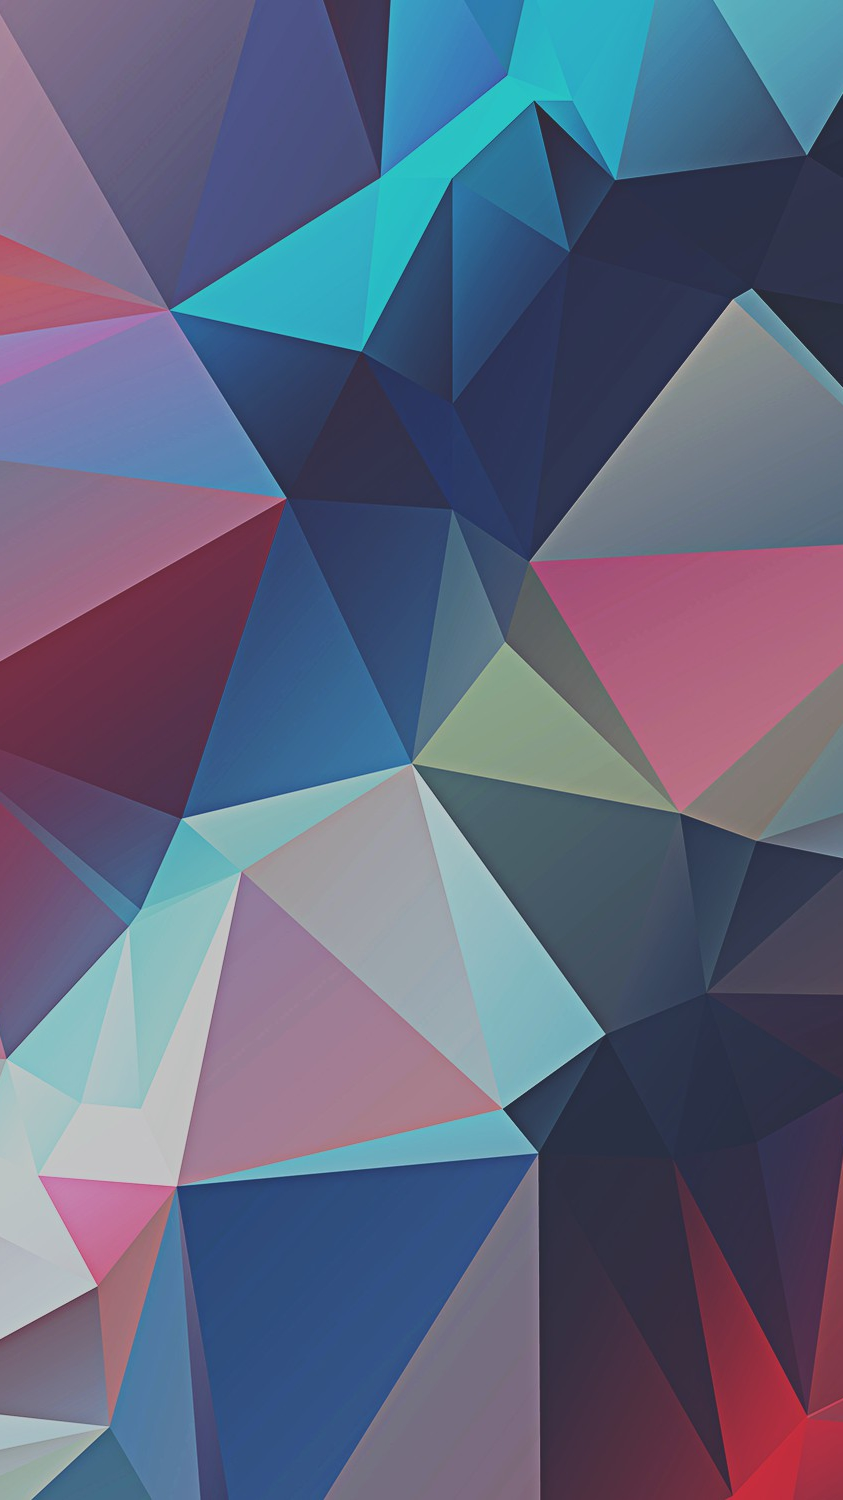 Best Quotes Wallpapers For Iphone Low Poly Geometric Art Iphone Wallpaper Iphone Wallpapers